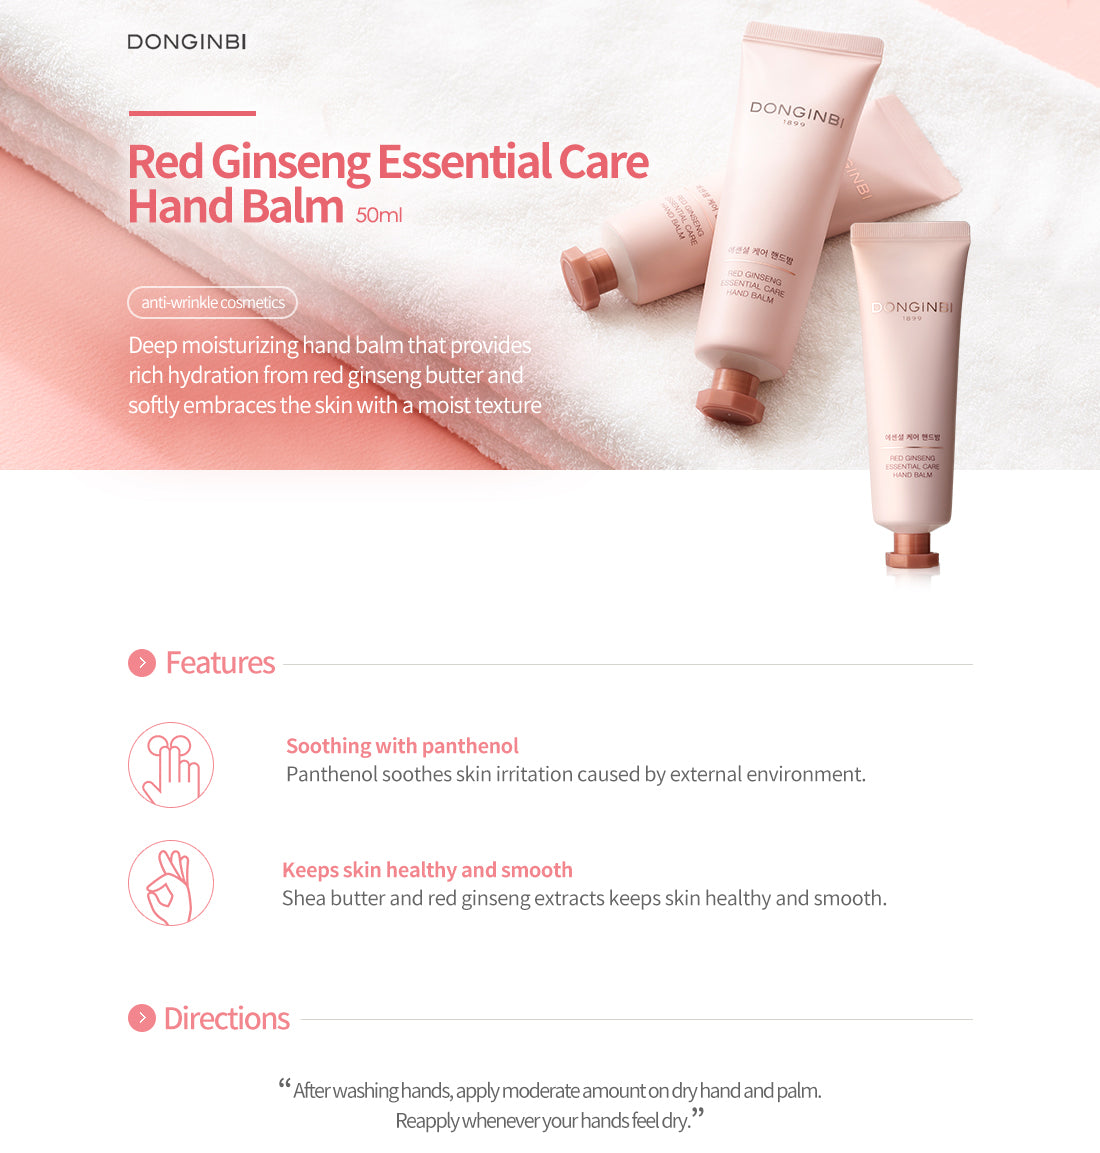 red_ginseng_essential_care_hand_balm-1.jpg